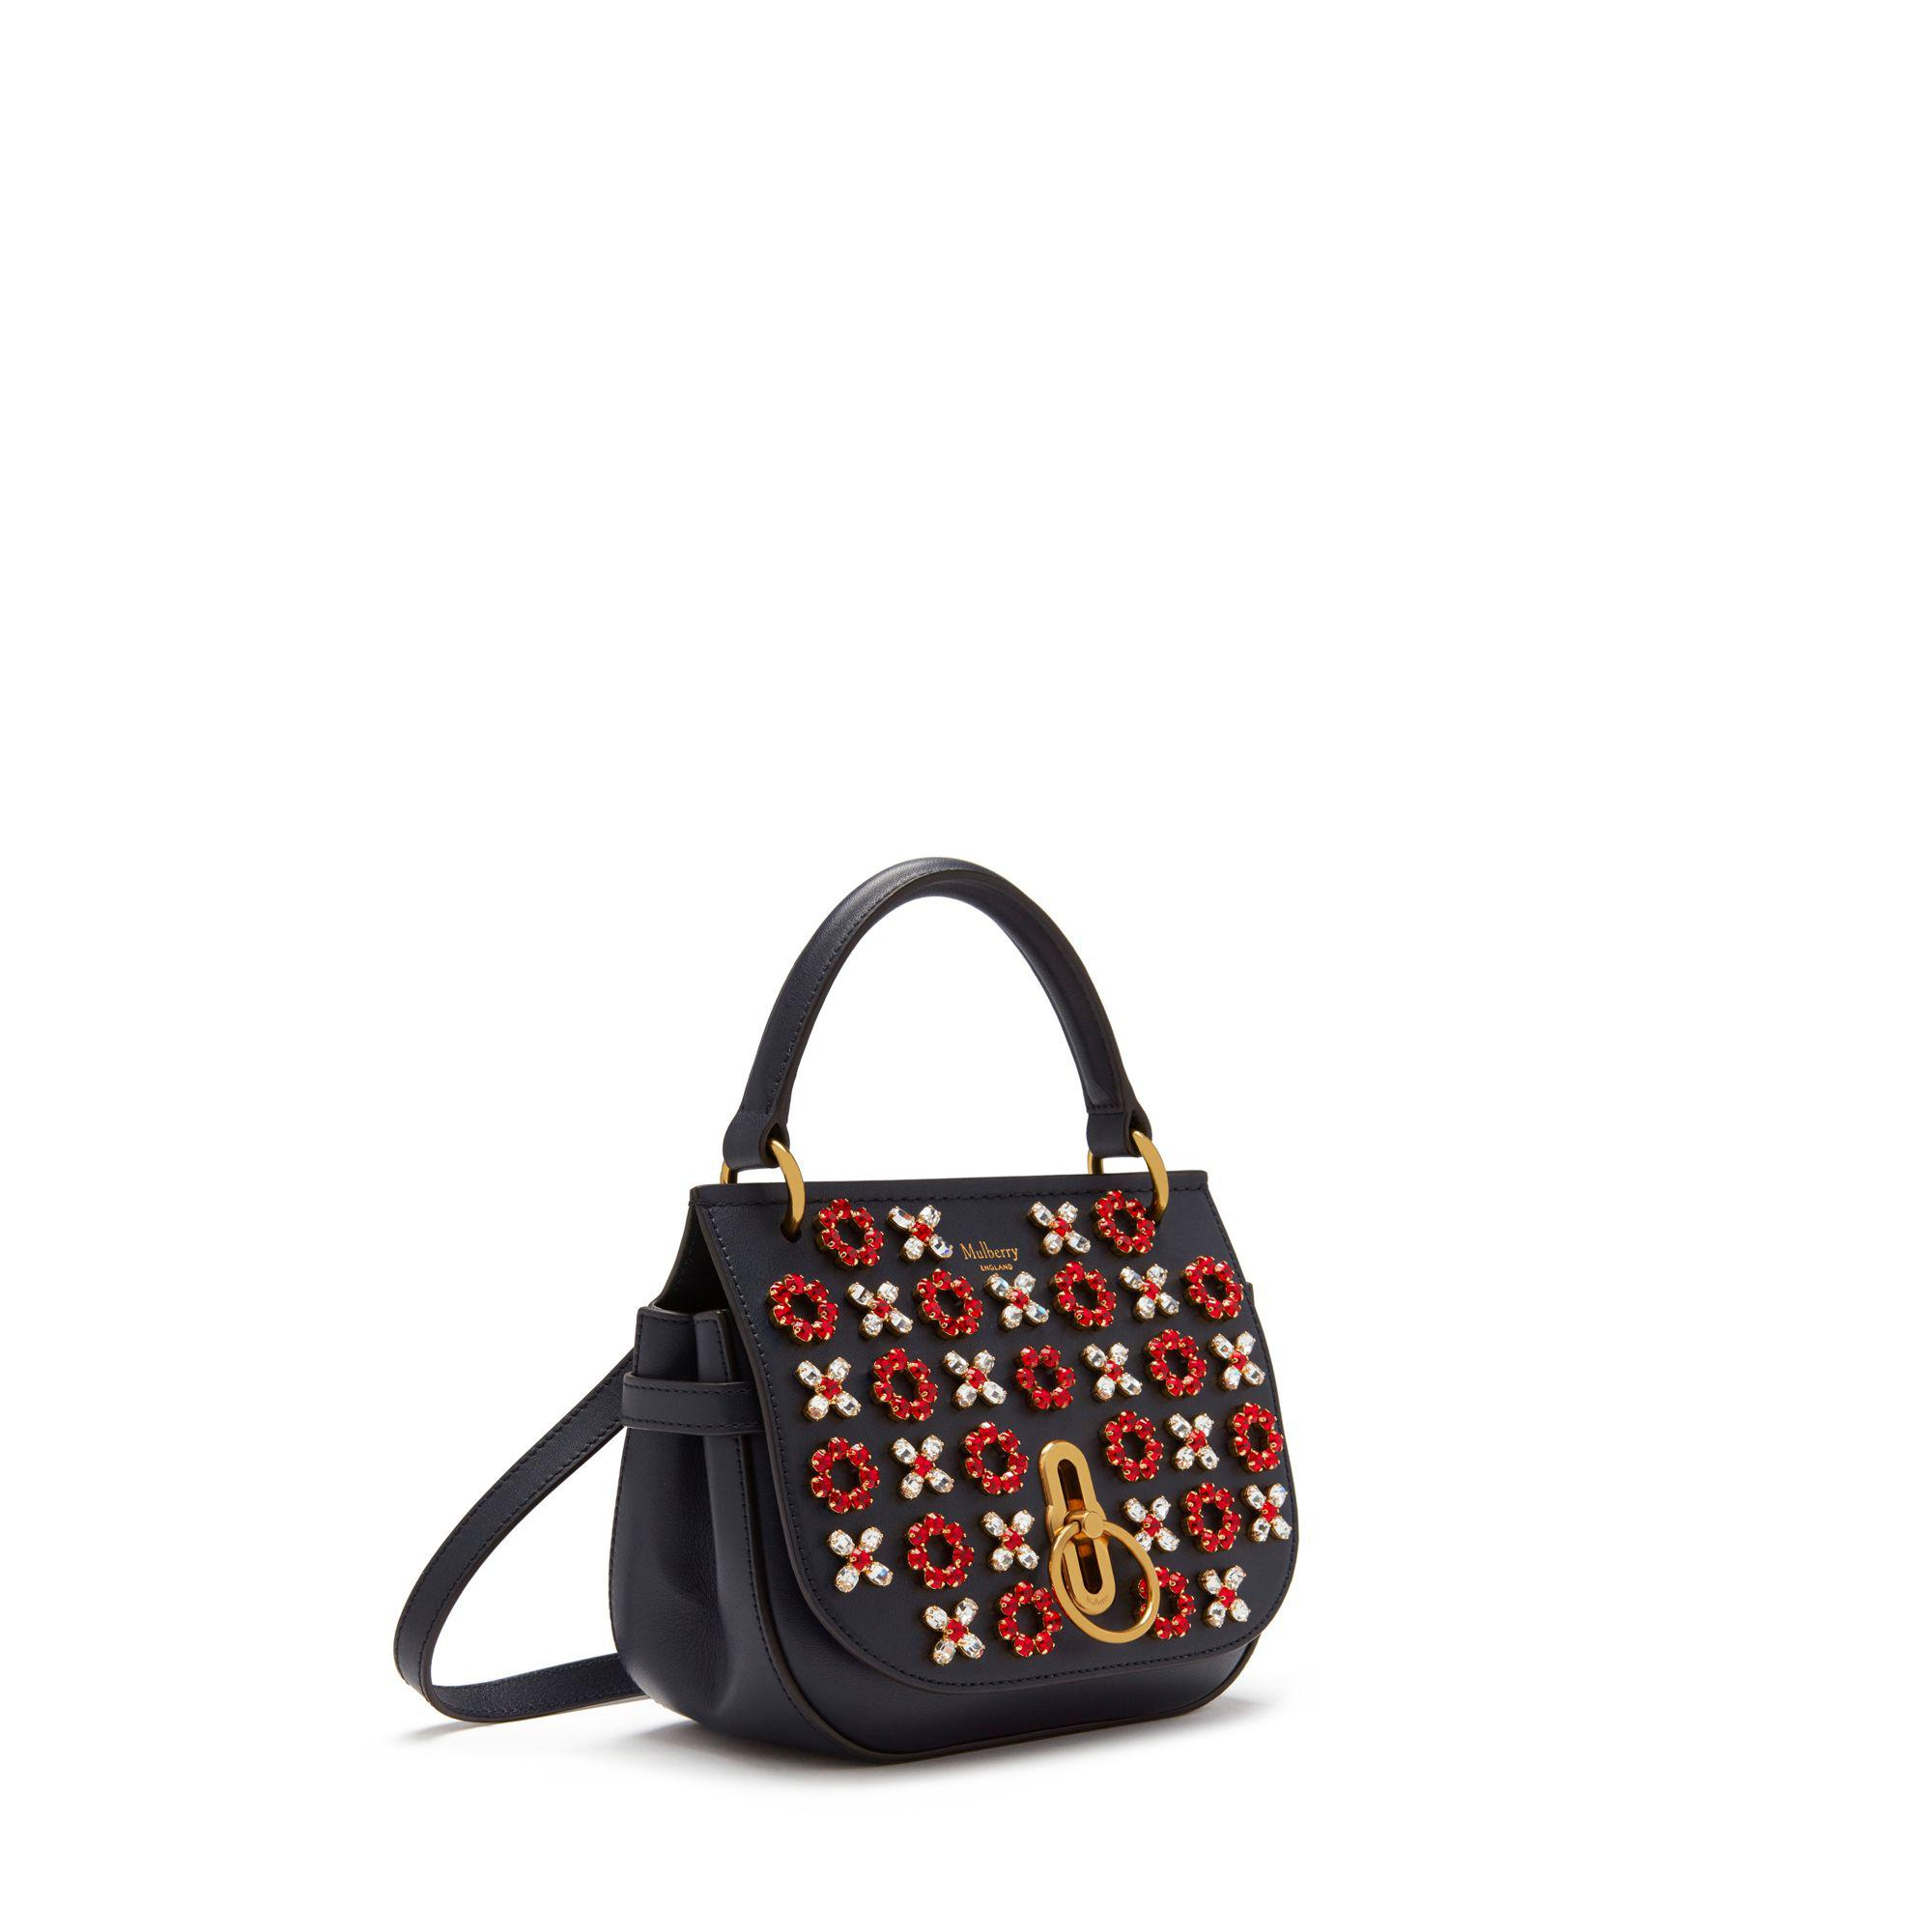 830efb7cd234 Mulberry Small Amberley Satchel In Midnight Geo Floral With Dots ...